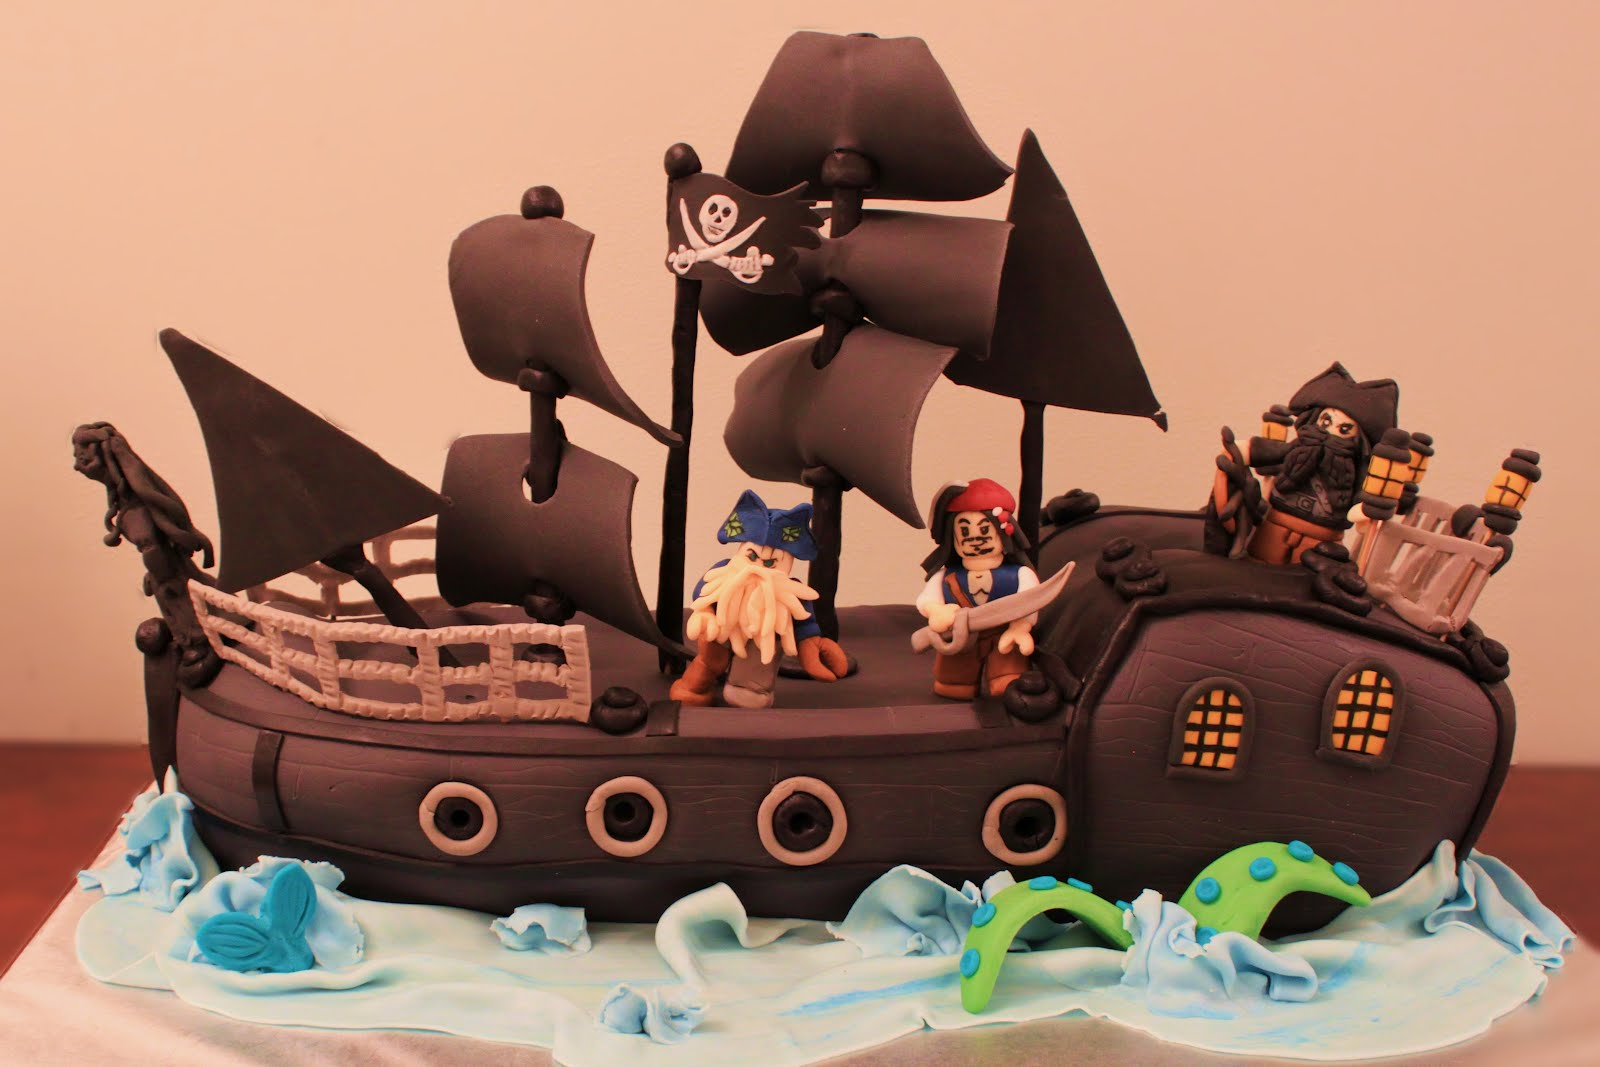 Lego pirates of the caribbean cake i haven t had this much fun with a